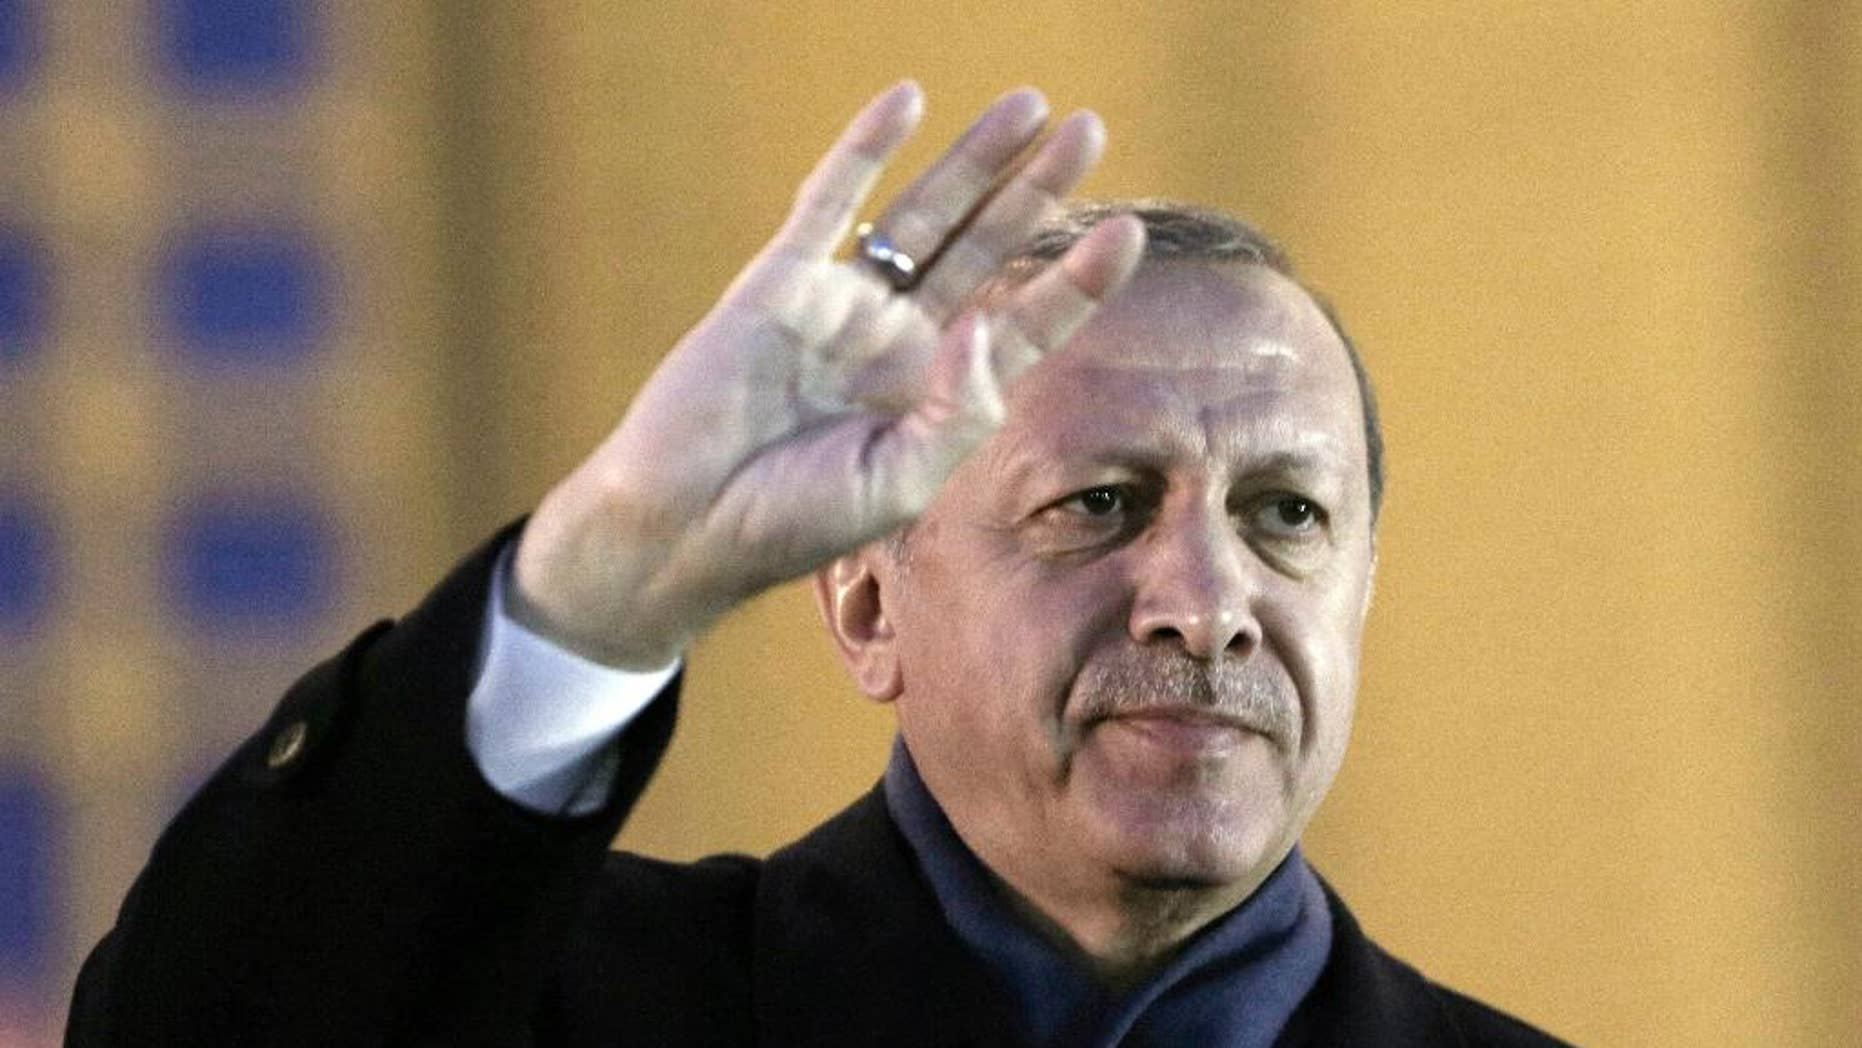 Turkey's President Recep Tayyip Erdogan gestures as he delivers a speech during a rally of supporters a day after the referendum, at his palace, in Ankara, Turkey, Monday, April 17, 2017. Turkey's main opposition party urged the country's electoral board Monday to cancel the results of a landmark referendum that granted sweeping new powers to Erdogan, citing what it called substantial voting irregularities. (AP Photo/Burhan Ozbilici)